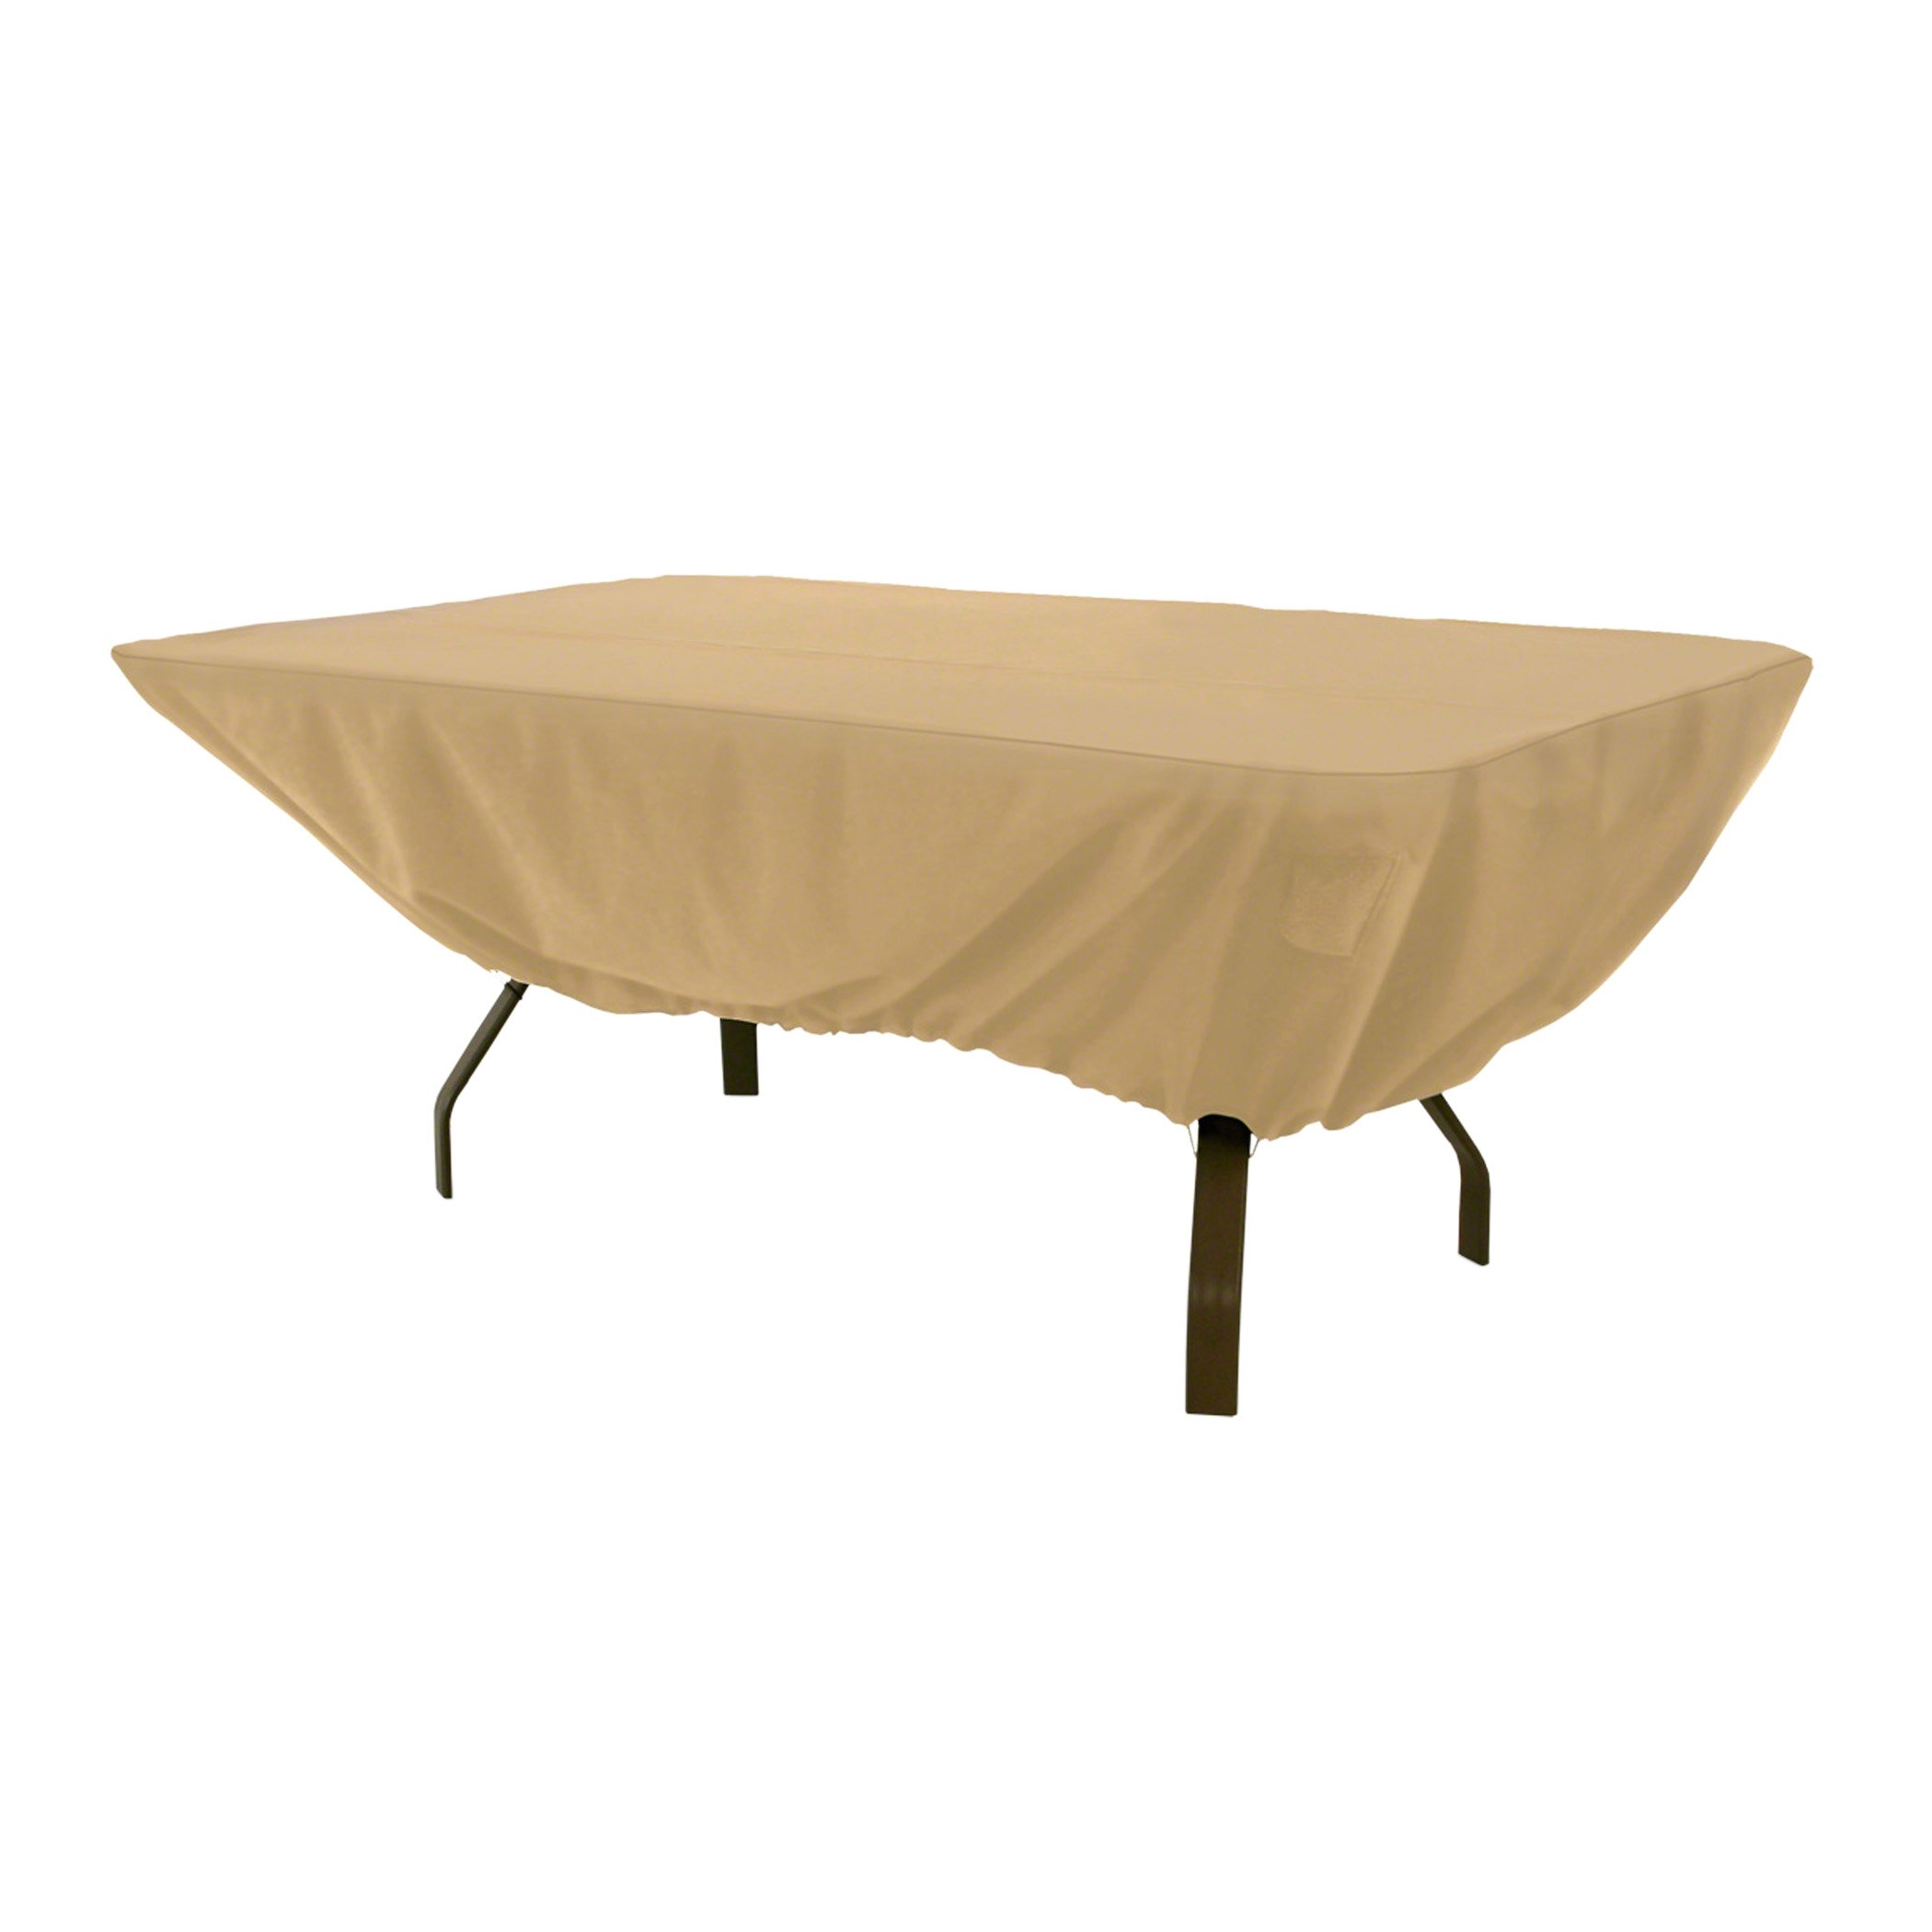 Classic Accessories Terrazzo Rectangular/Oval Patio Table Cover by Classic Accessories